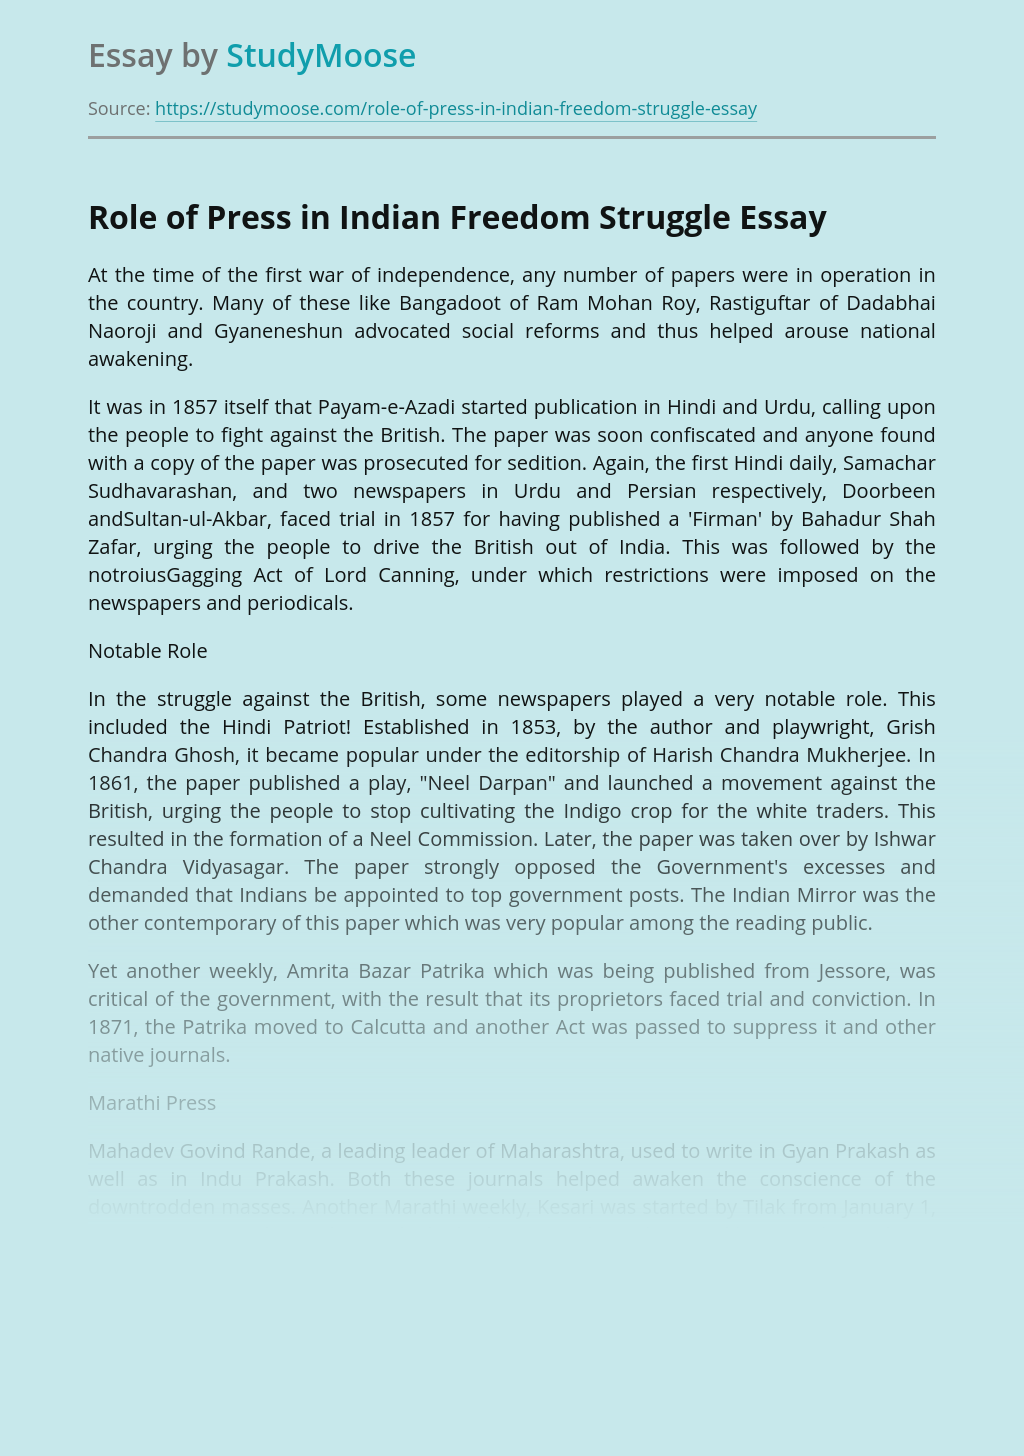 Role of Press in Indian Freedom Struggle